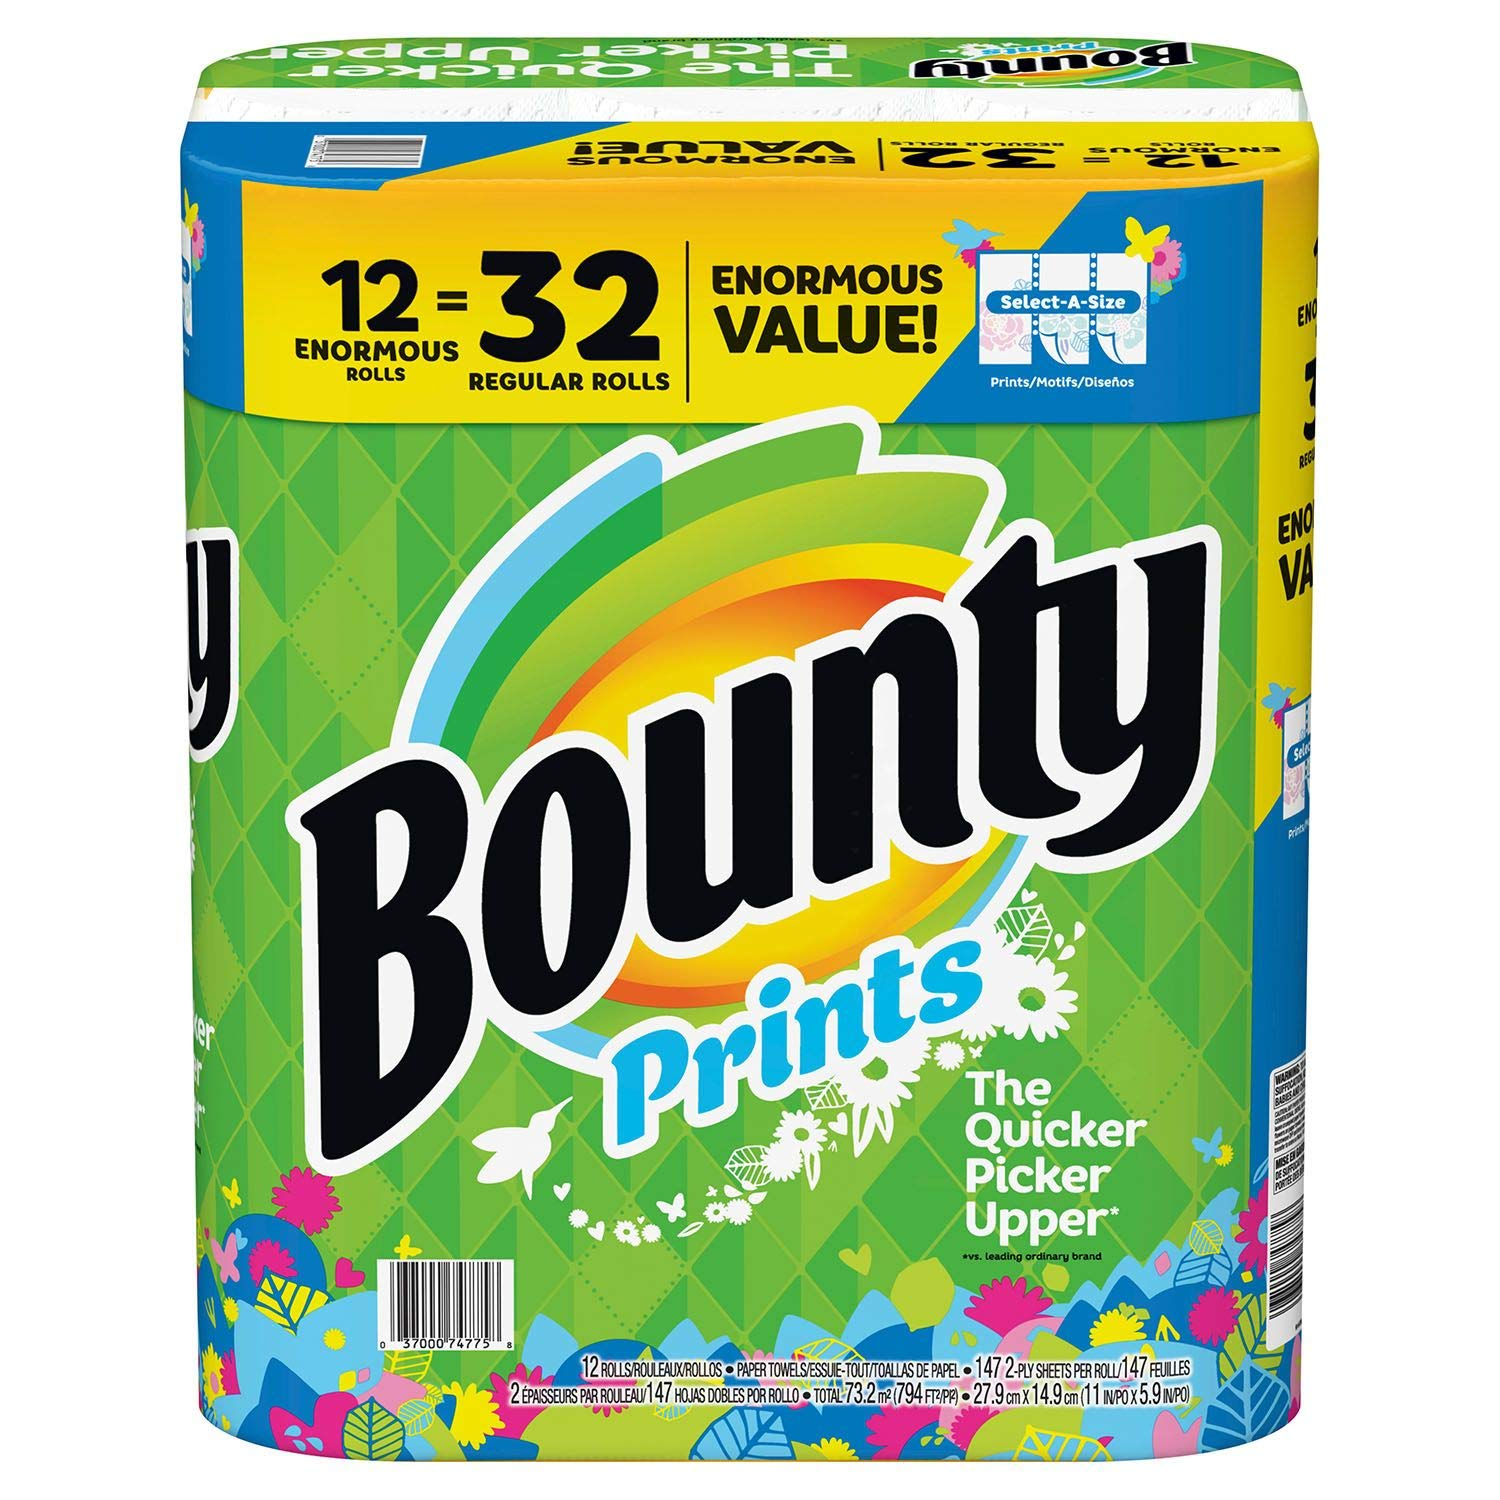 Amazon.com: Bounty Select-A-Size Paper Towels, Print, 12 Enormous Rolls=32 Regular Rolls: Kitchen & Dining